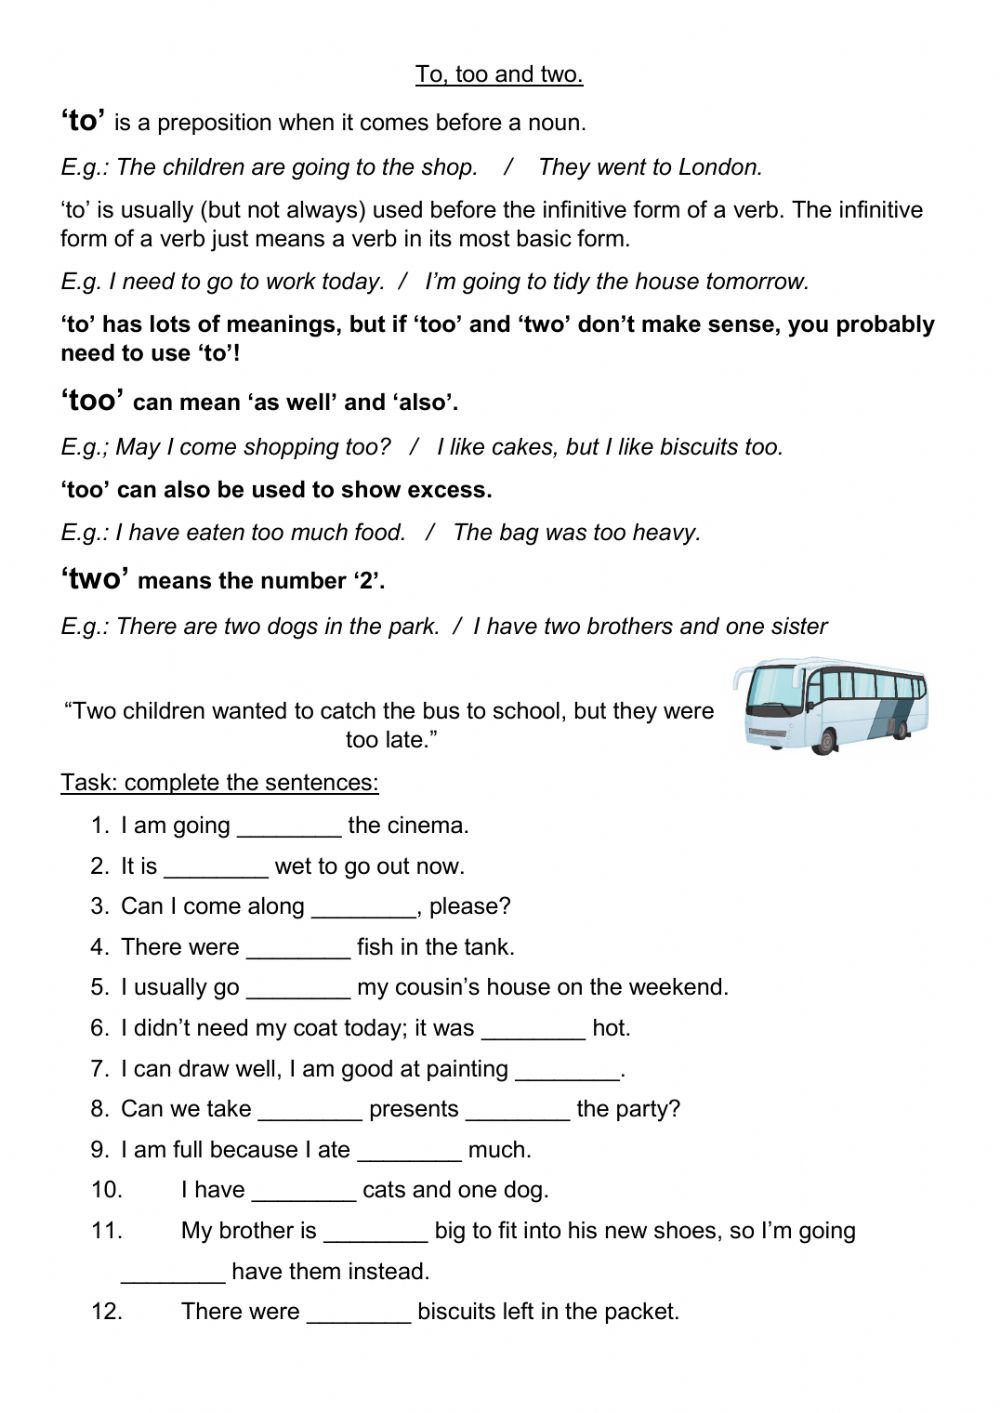 To, too, two worksheet For To Too Two Worksheet